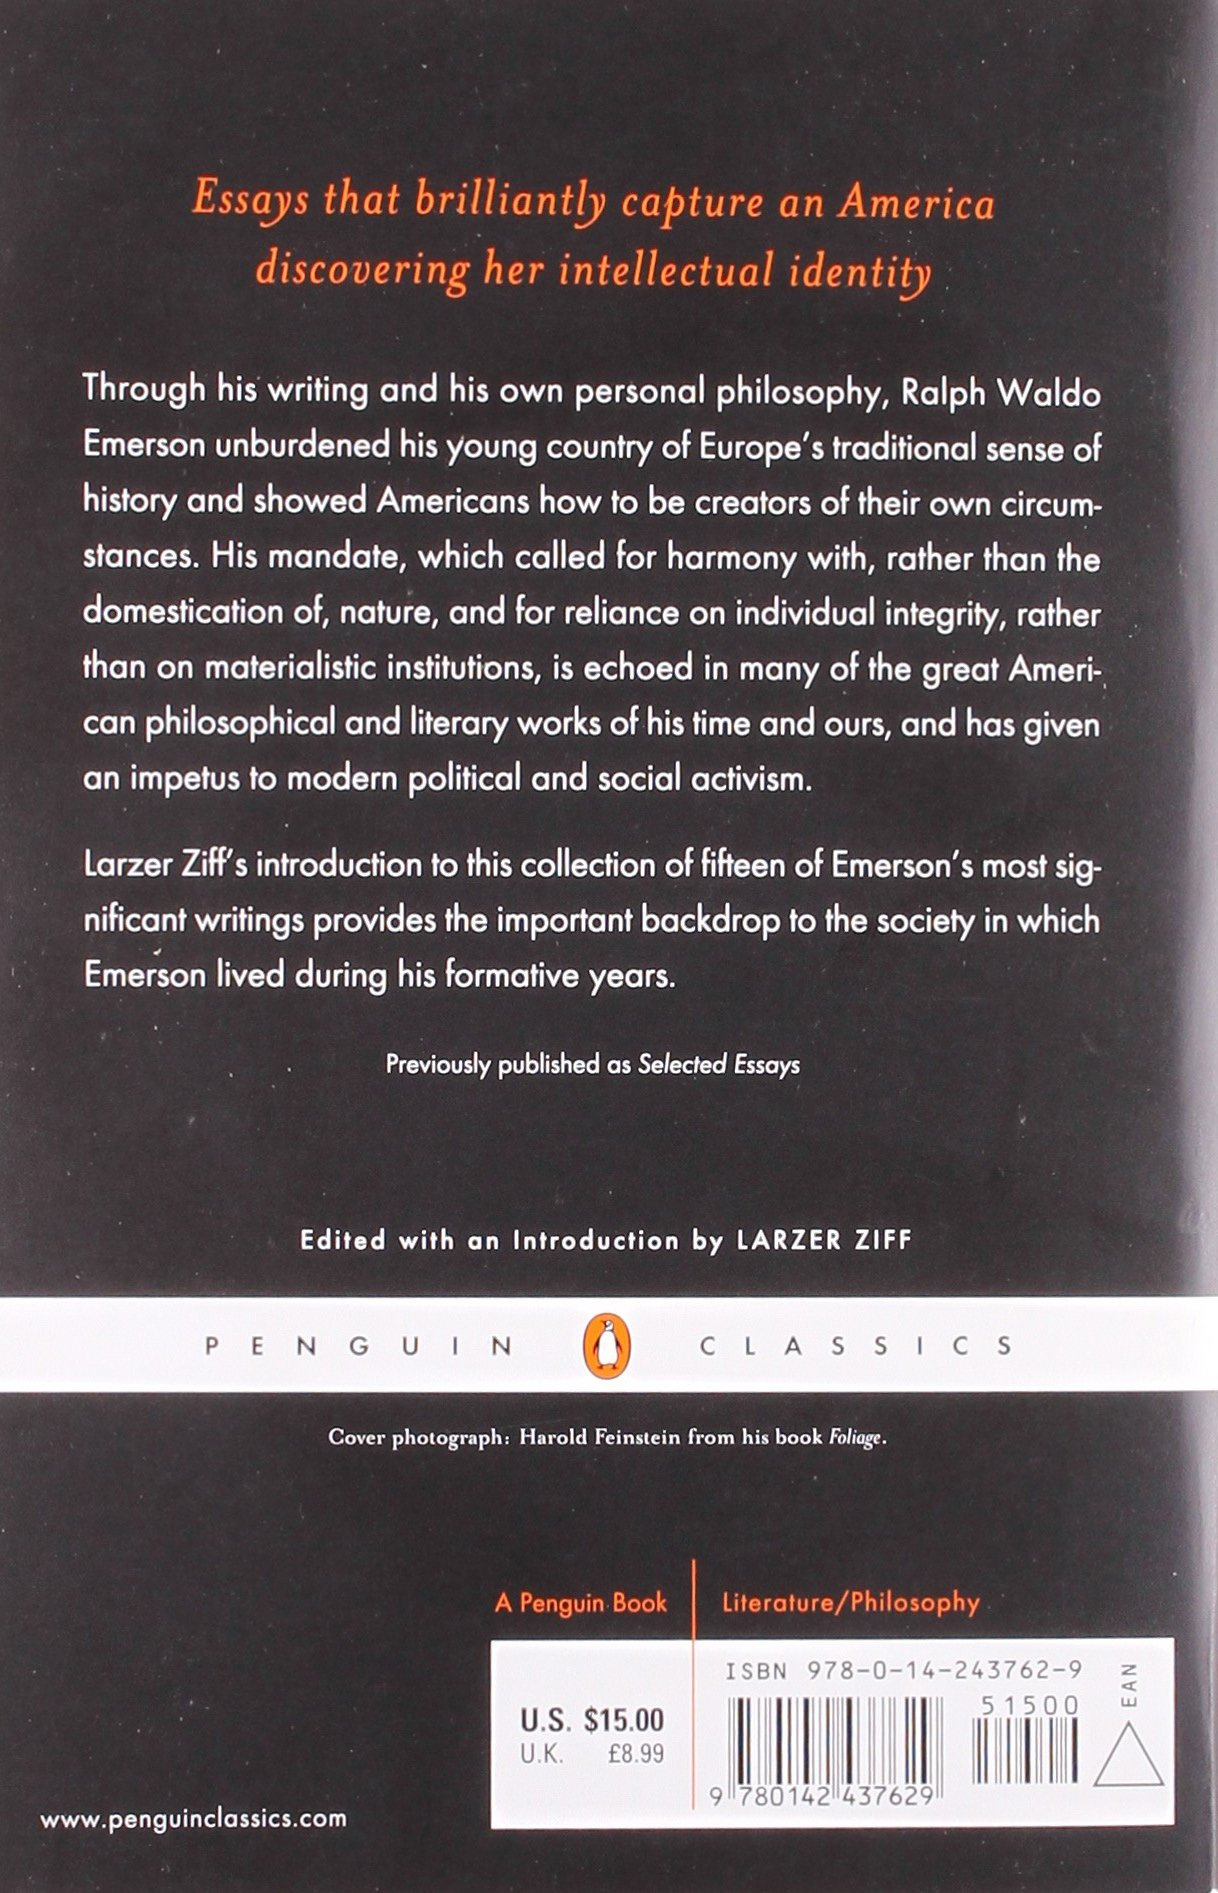 nature and selected essays penguin classics co uk ralph nature and selected essays penguin classics co uk ralph waldo emerson 9780142437629 books